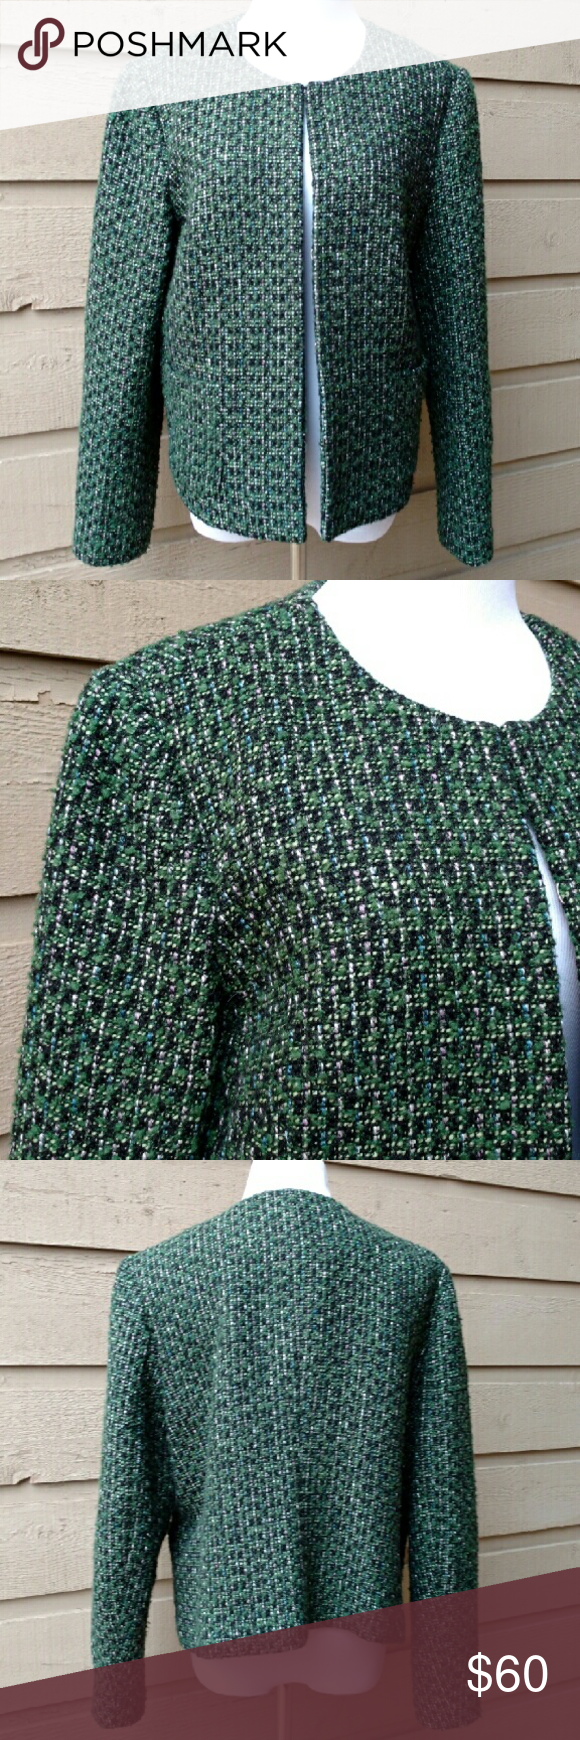 Talbots Blazer Talbots green, white, and black blazer size 12. Great condition, only worn a few times.  Five hooks instead of buttons, top hook shown in pictures.  Padding in shoulders. Green lining. Two front pockets.  20 inch bust. 24 inch arms. 24 inch length.  Material: Shell 45% polyester, 44% wool, 7% acrylic, 4% rayon. Lining 100% polyester. Talbots Jackets & Coats Blazers